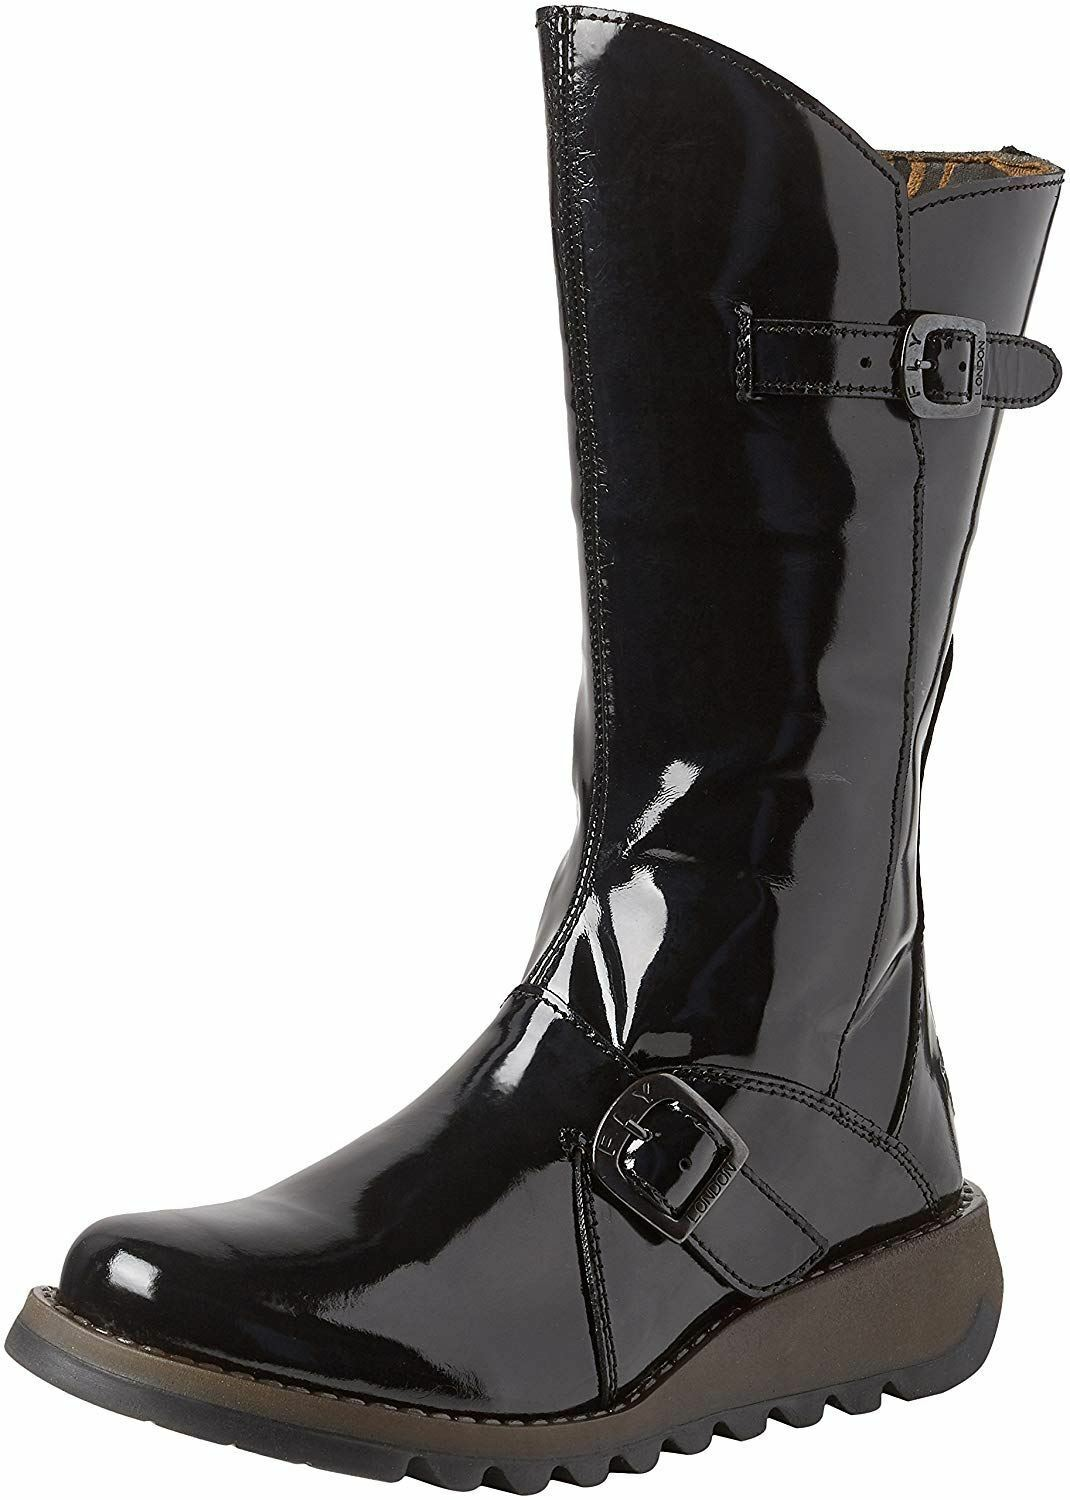 Fly london Mes 2 Black Patent Leather Womens Mid Calf Boots